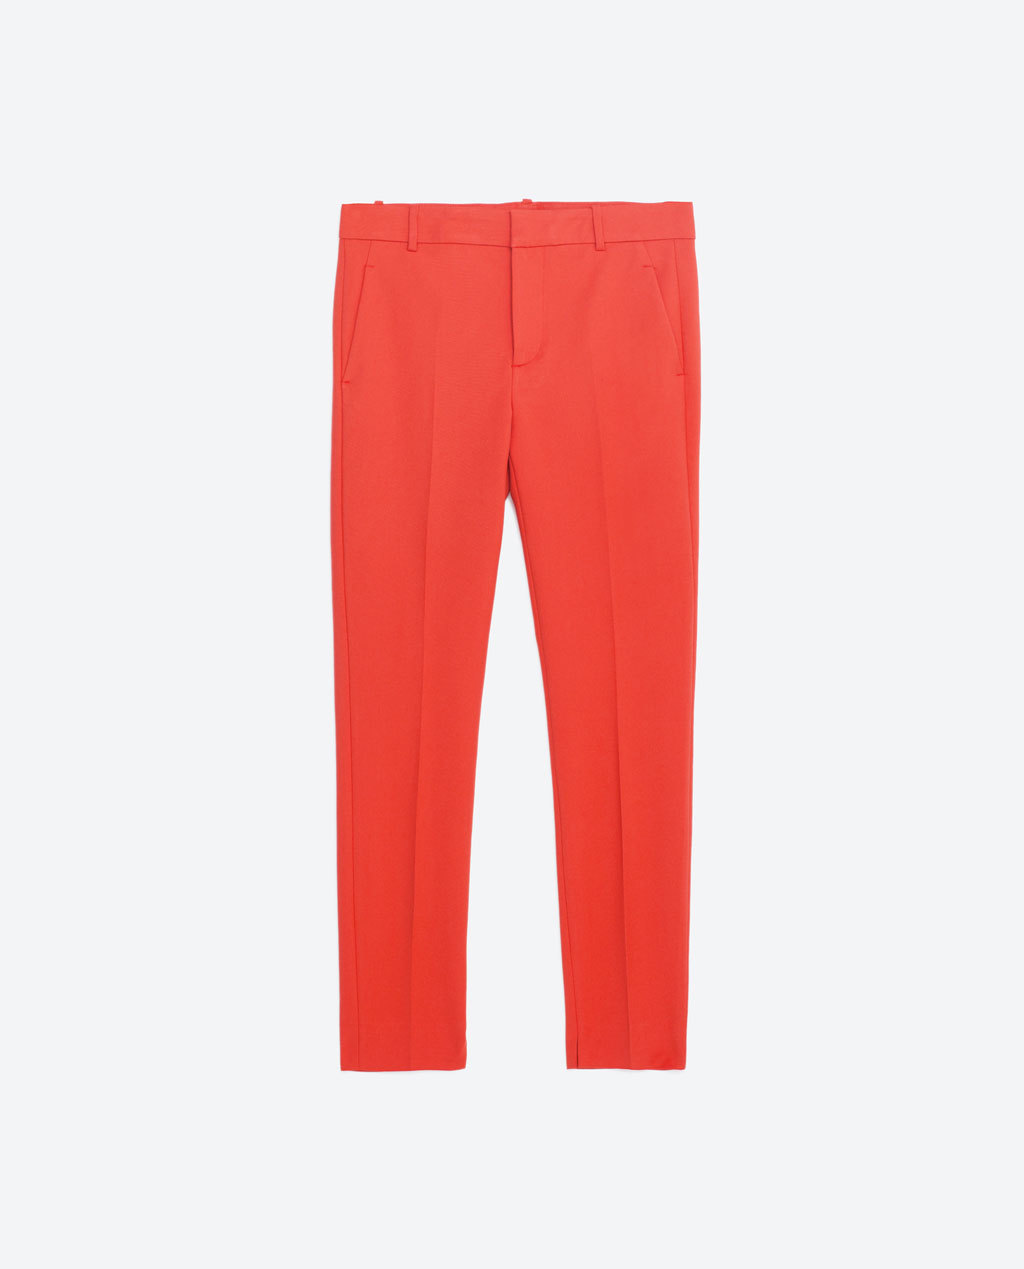 Chino Trousers - pattern: plain; waist: mid/regular rise; predominant colour: true red; length: ankle length; fibres: cotton - stretch; fit: straight leg; pattern type: fabric; texture group: other - light to midweight; style: standard; occasions: creative work; season: s/s 2016; wardrobe: highlight